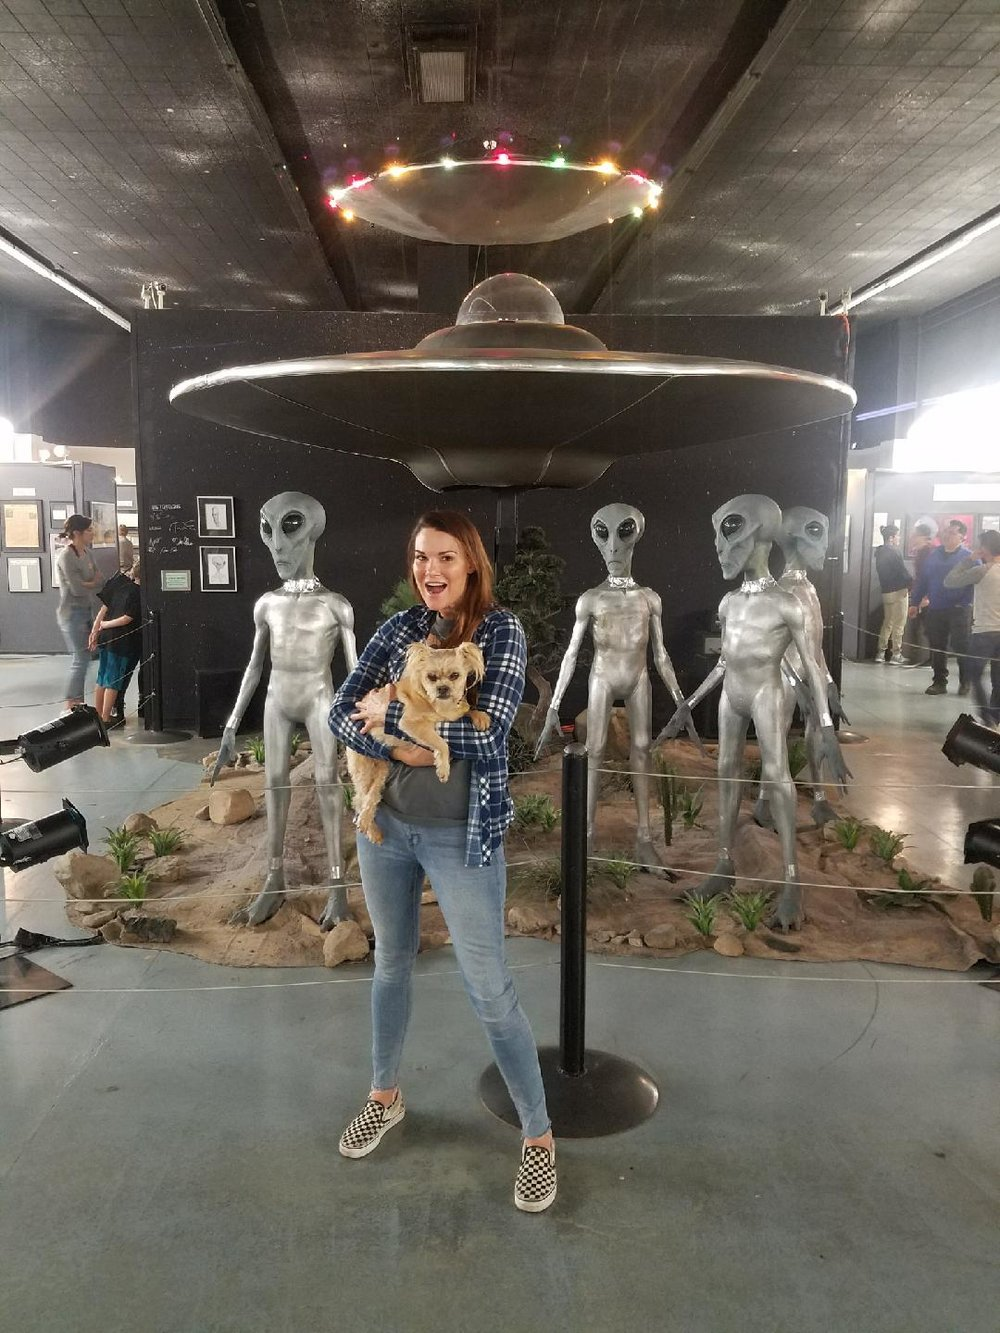 Amy Dumas is into veganisn, punk rock, atttoos and UFOs. Right at home on this site! . (Amy Dumas)